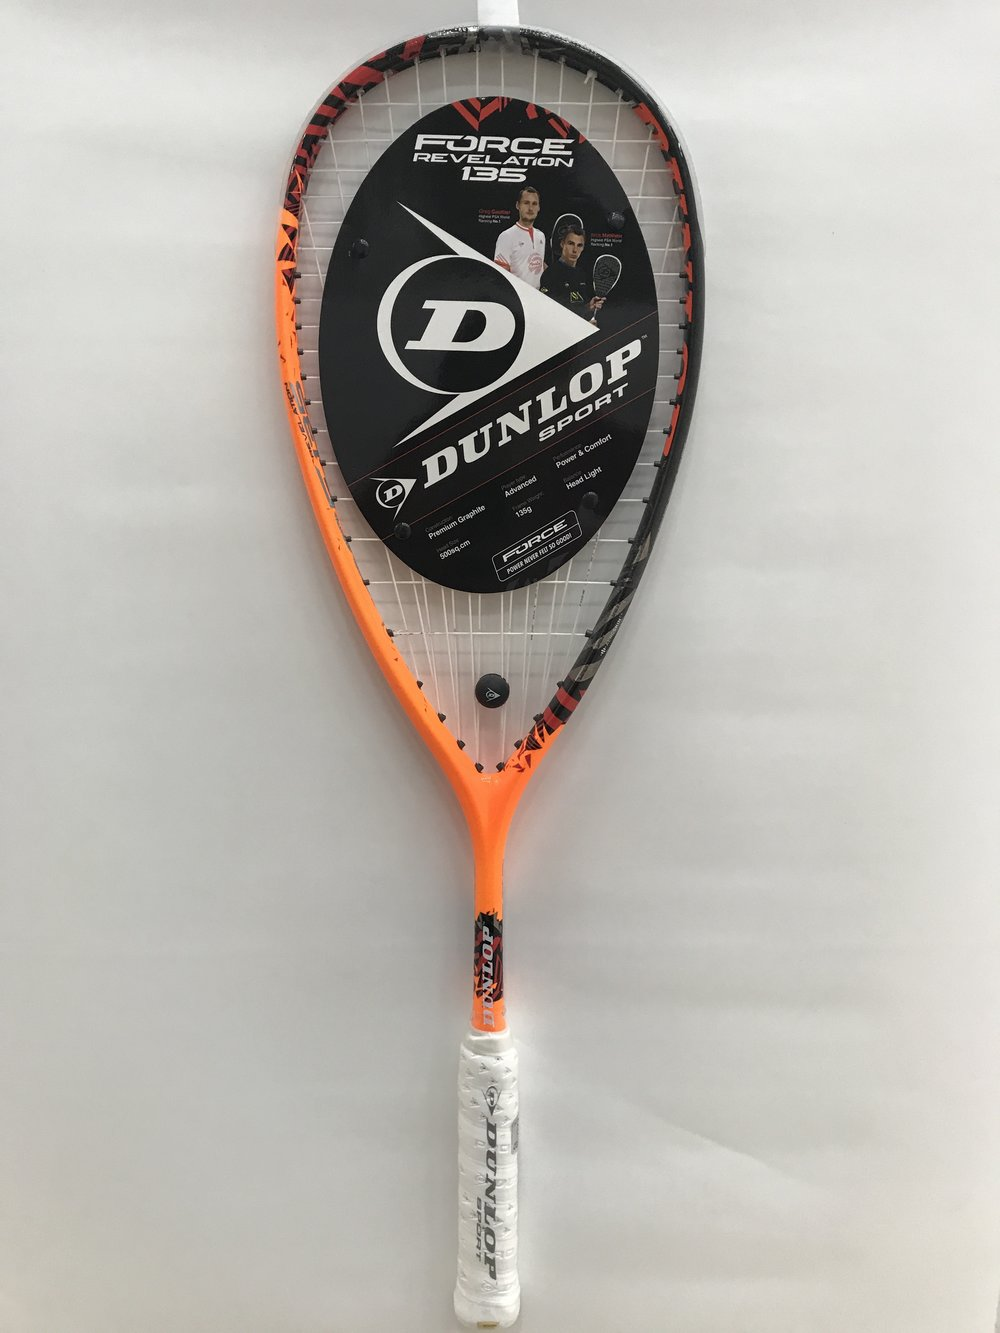 Dunlop Force Revelation 135 ($190)